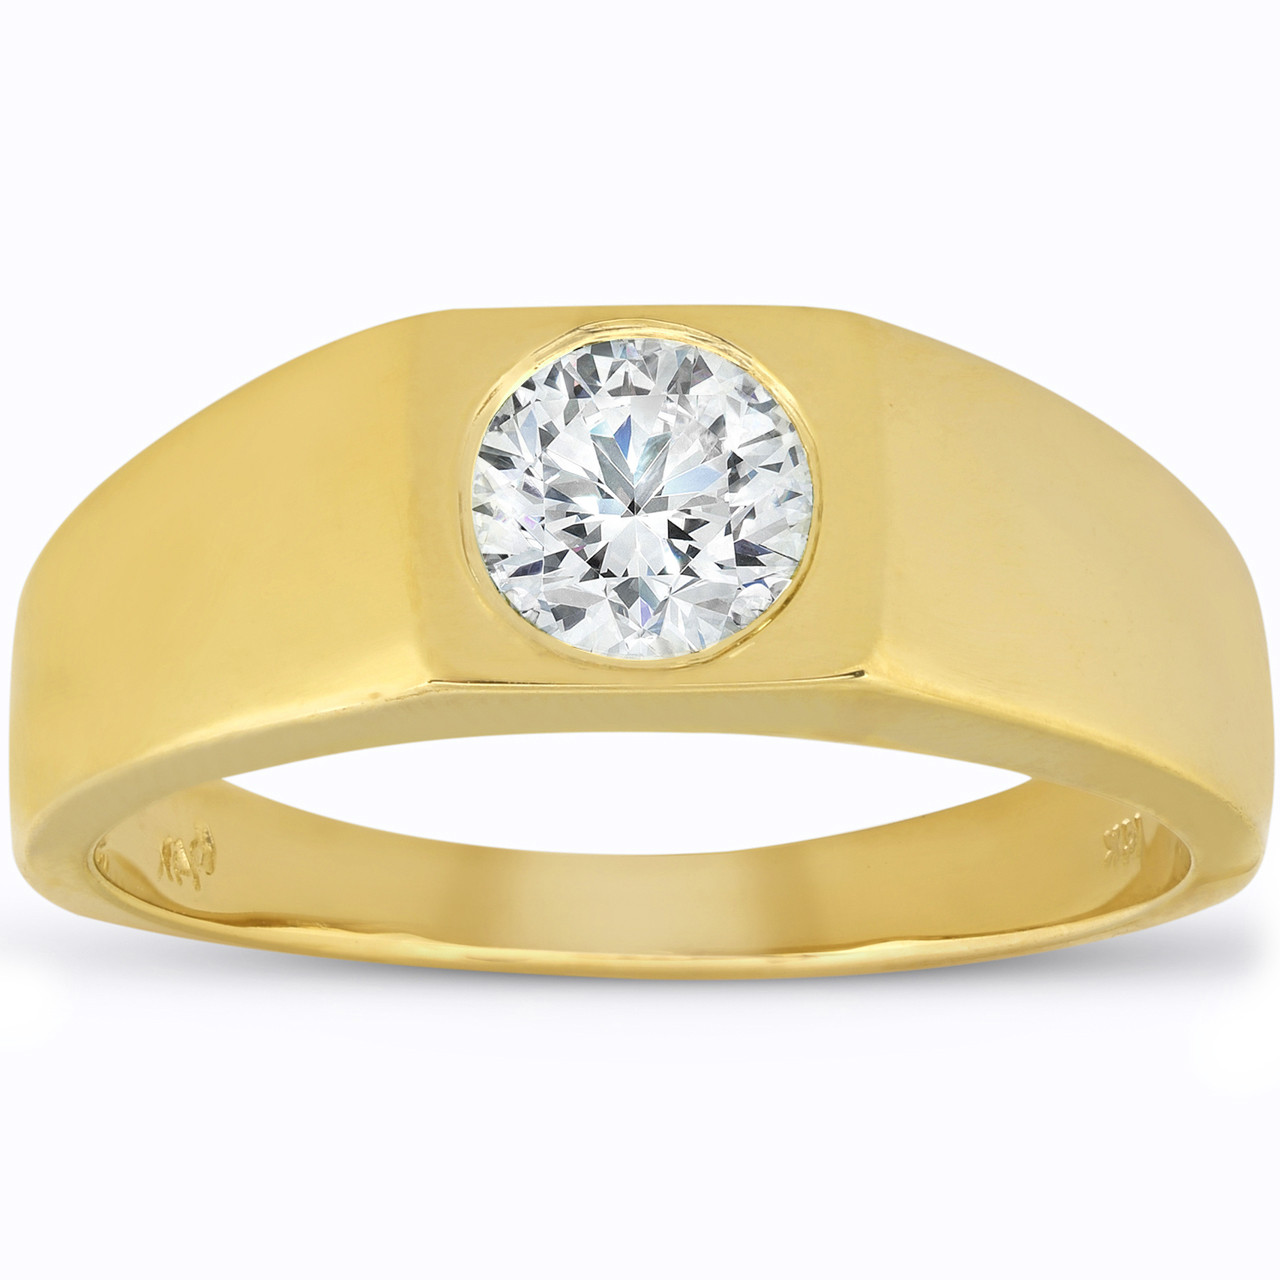 26016eed312ed Mens 1 ct Round Solitaire Diamond Wedding Ring 14k Yellow Gold (G/H,  SI1-SI2)